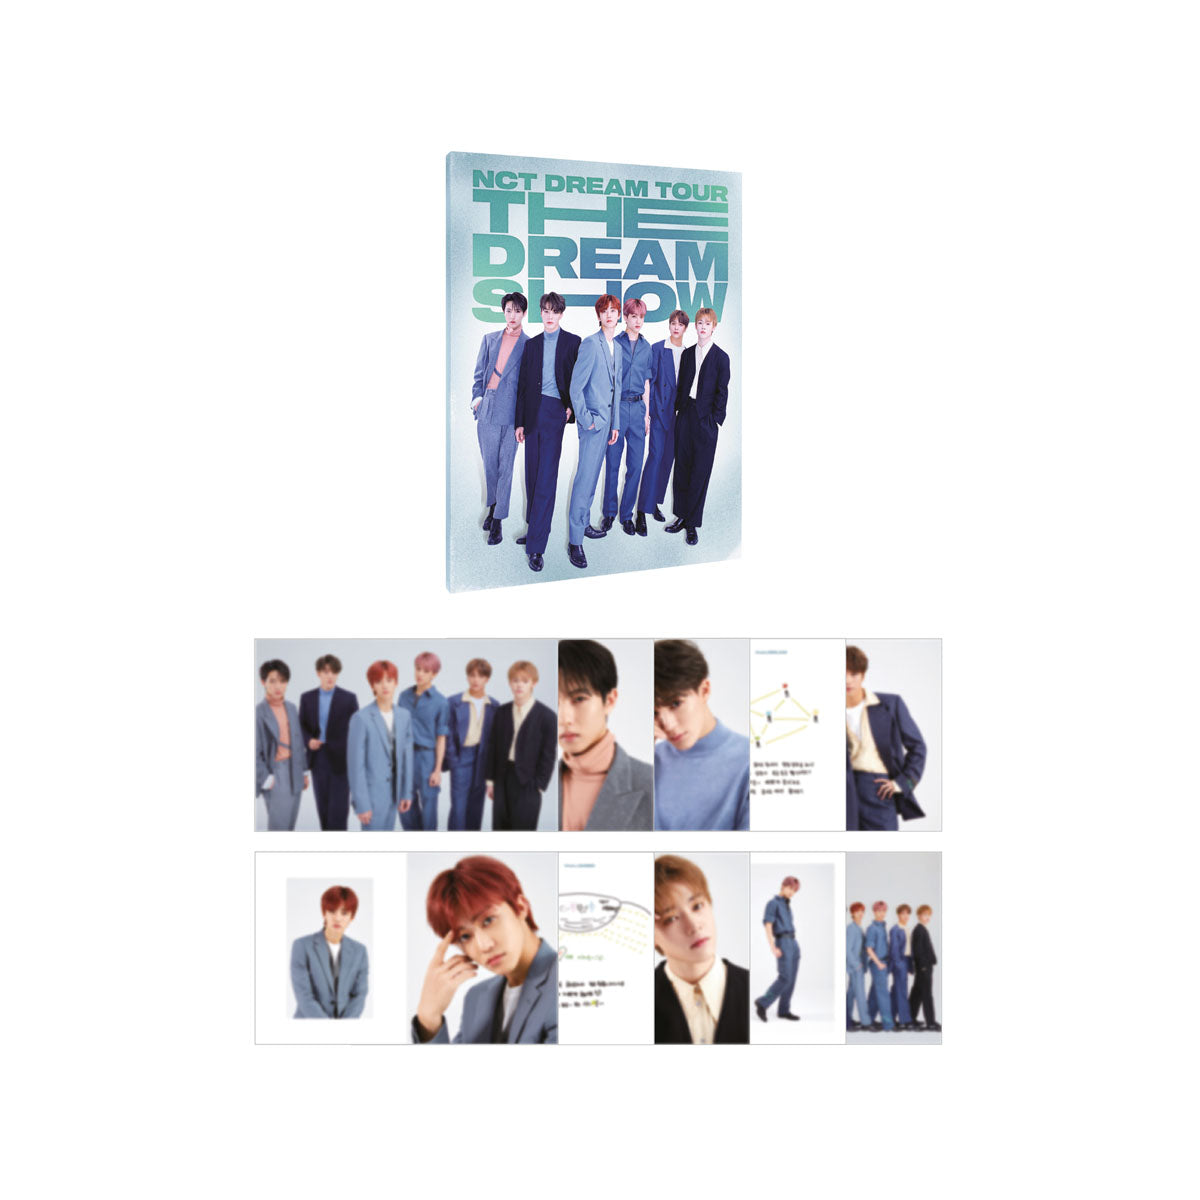 NCT DREAM Concert Brochure